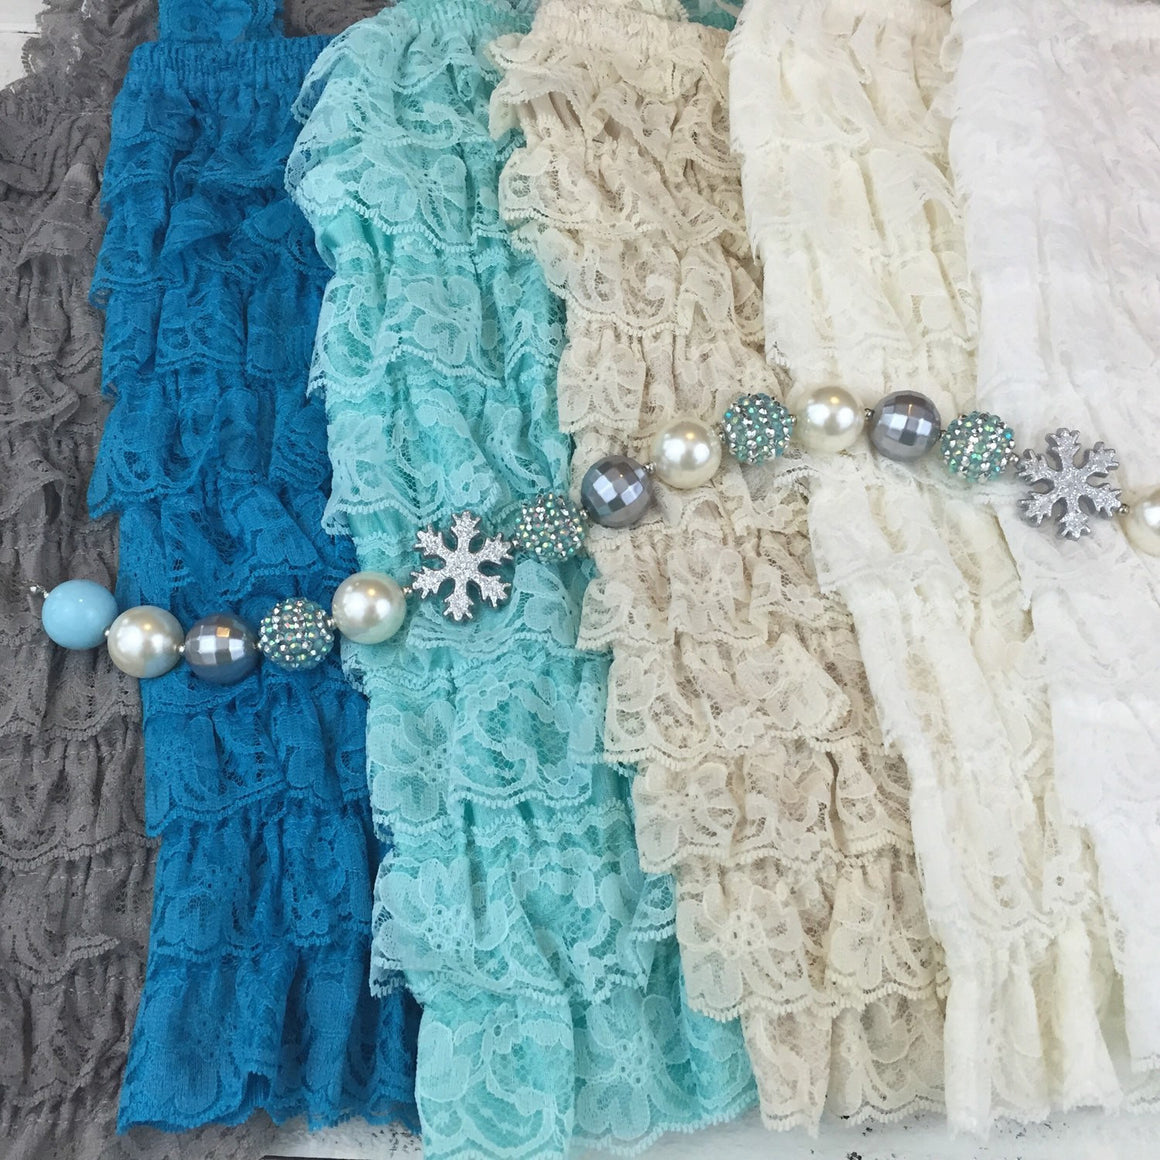 Lace Petti Romper - Grey, Turquoise, Aqua, Champagne, Ivory, White - HoneyLoveBoutique